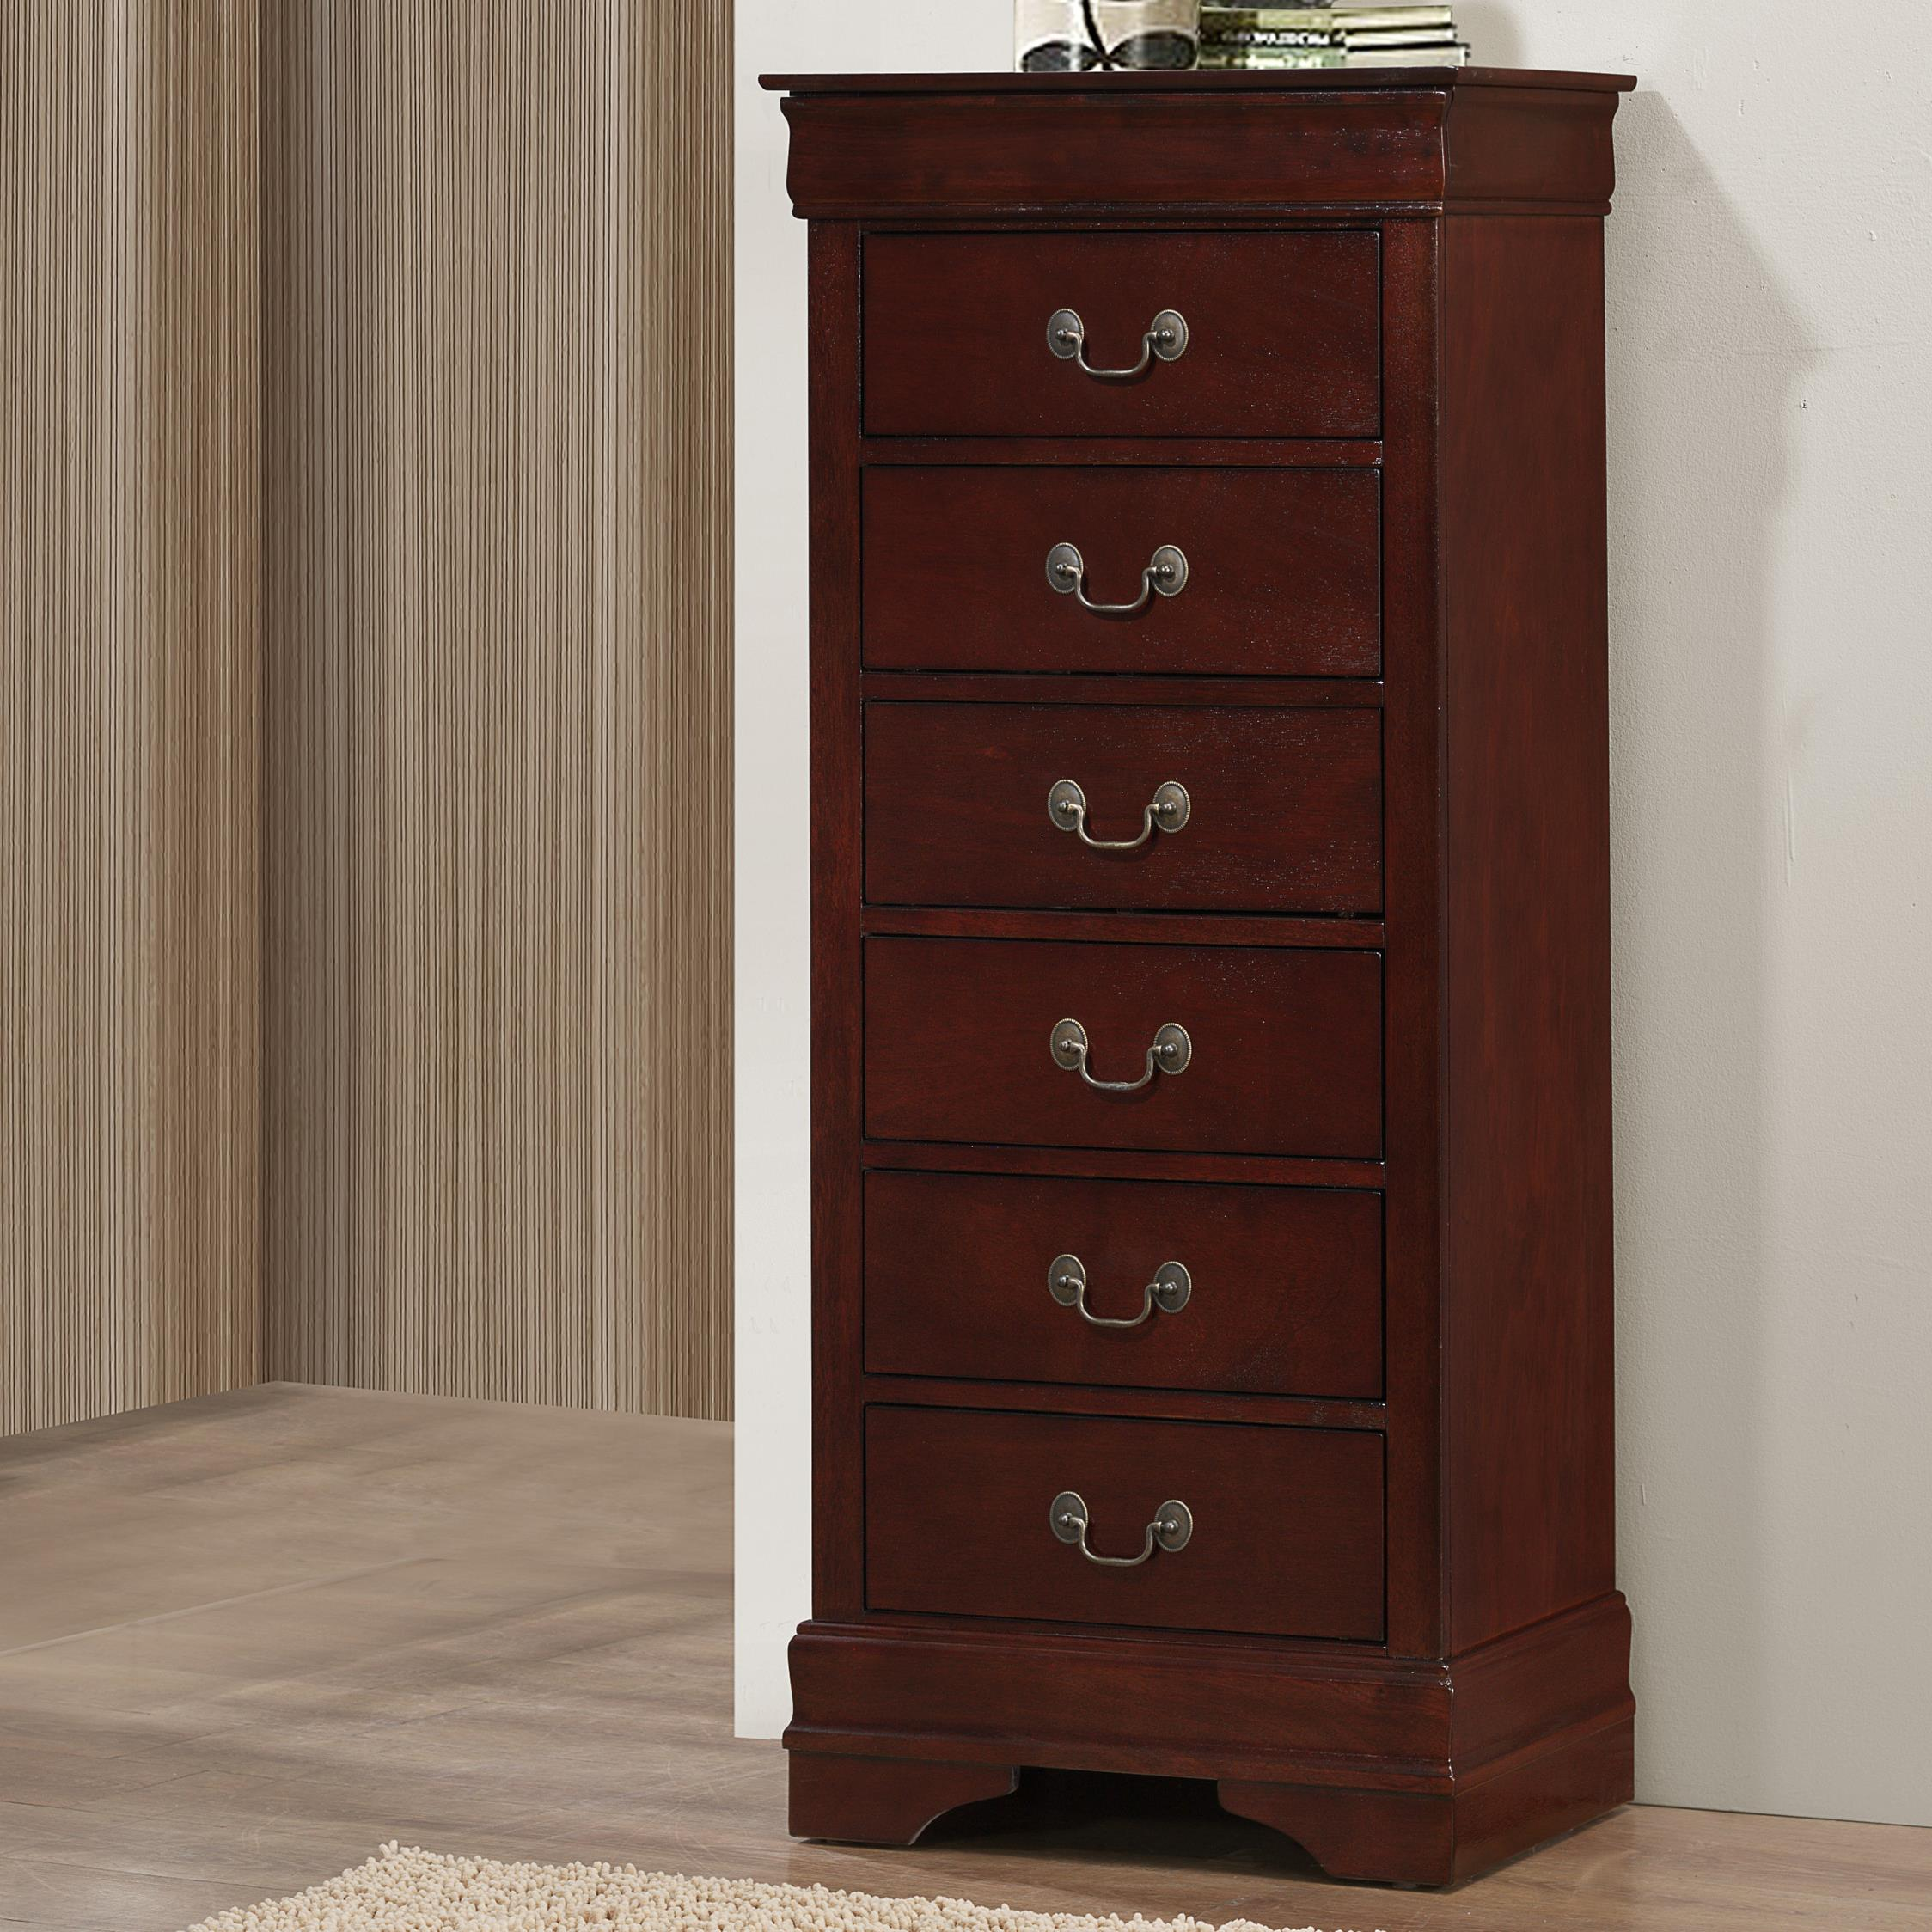 B3800 Louis Phillipe Lingerie Chest by Crown Mark Furniture at Del Sol Furniture